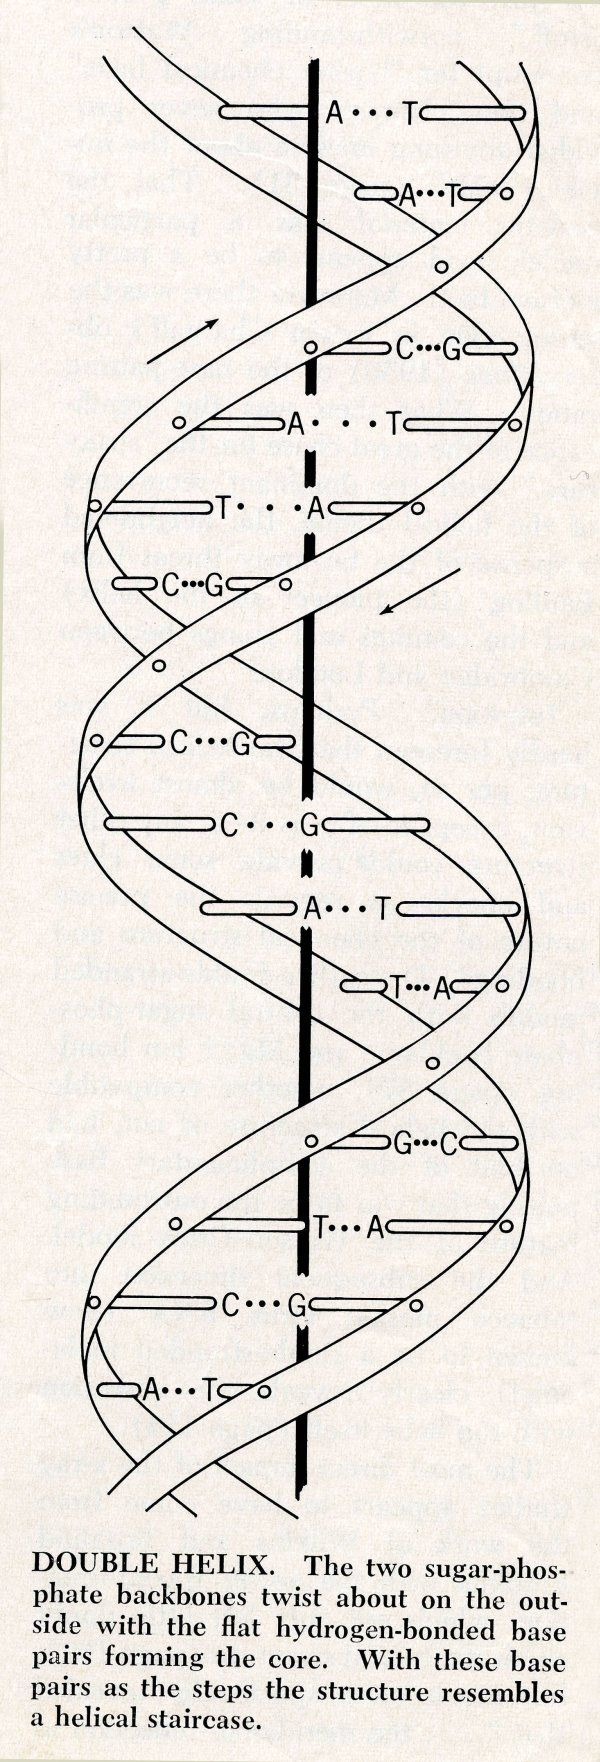 Here is a diagram of DNA which is much easier to